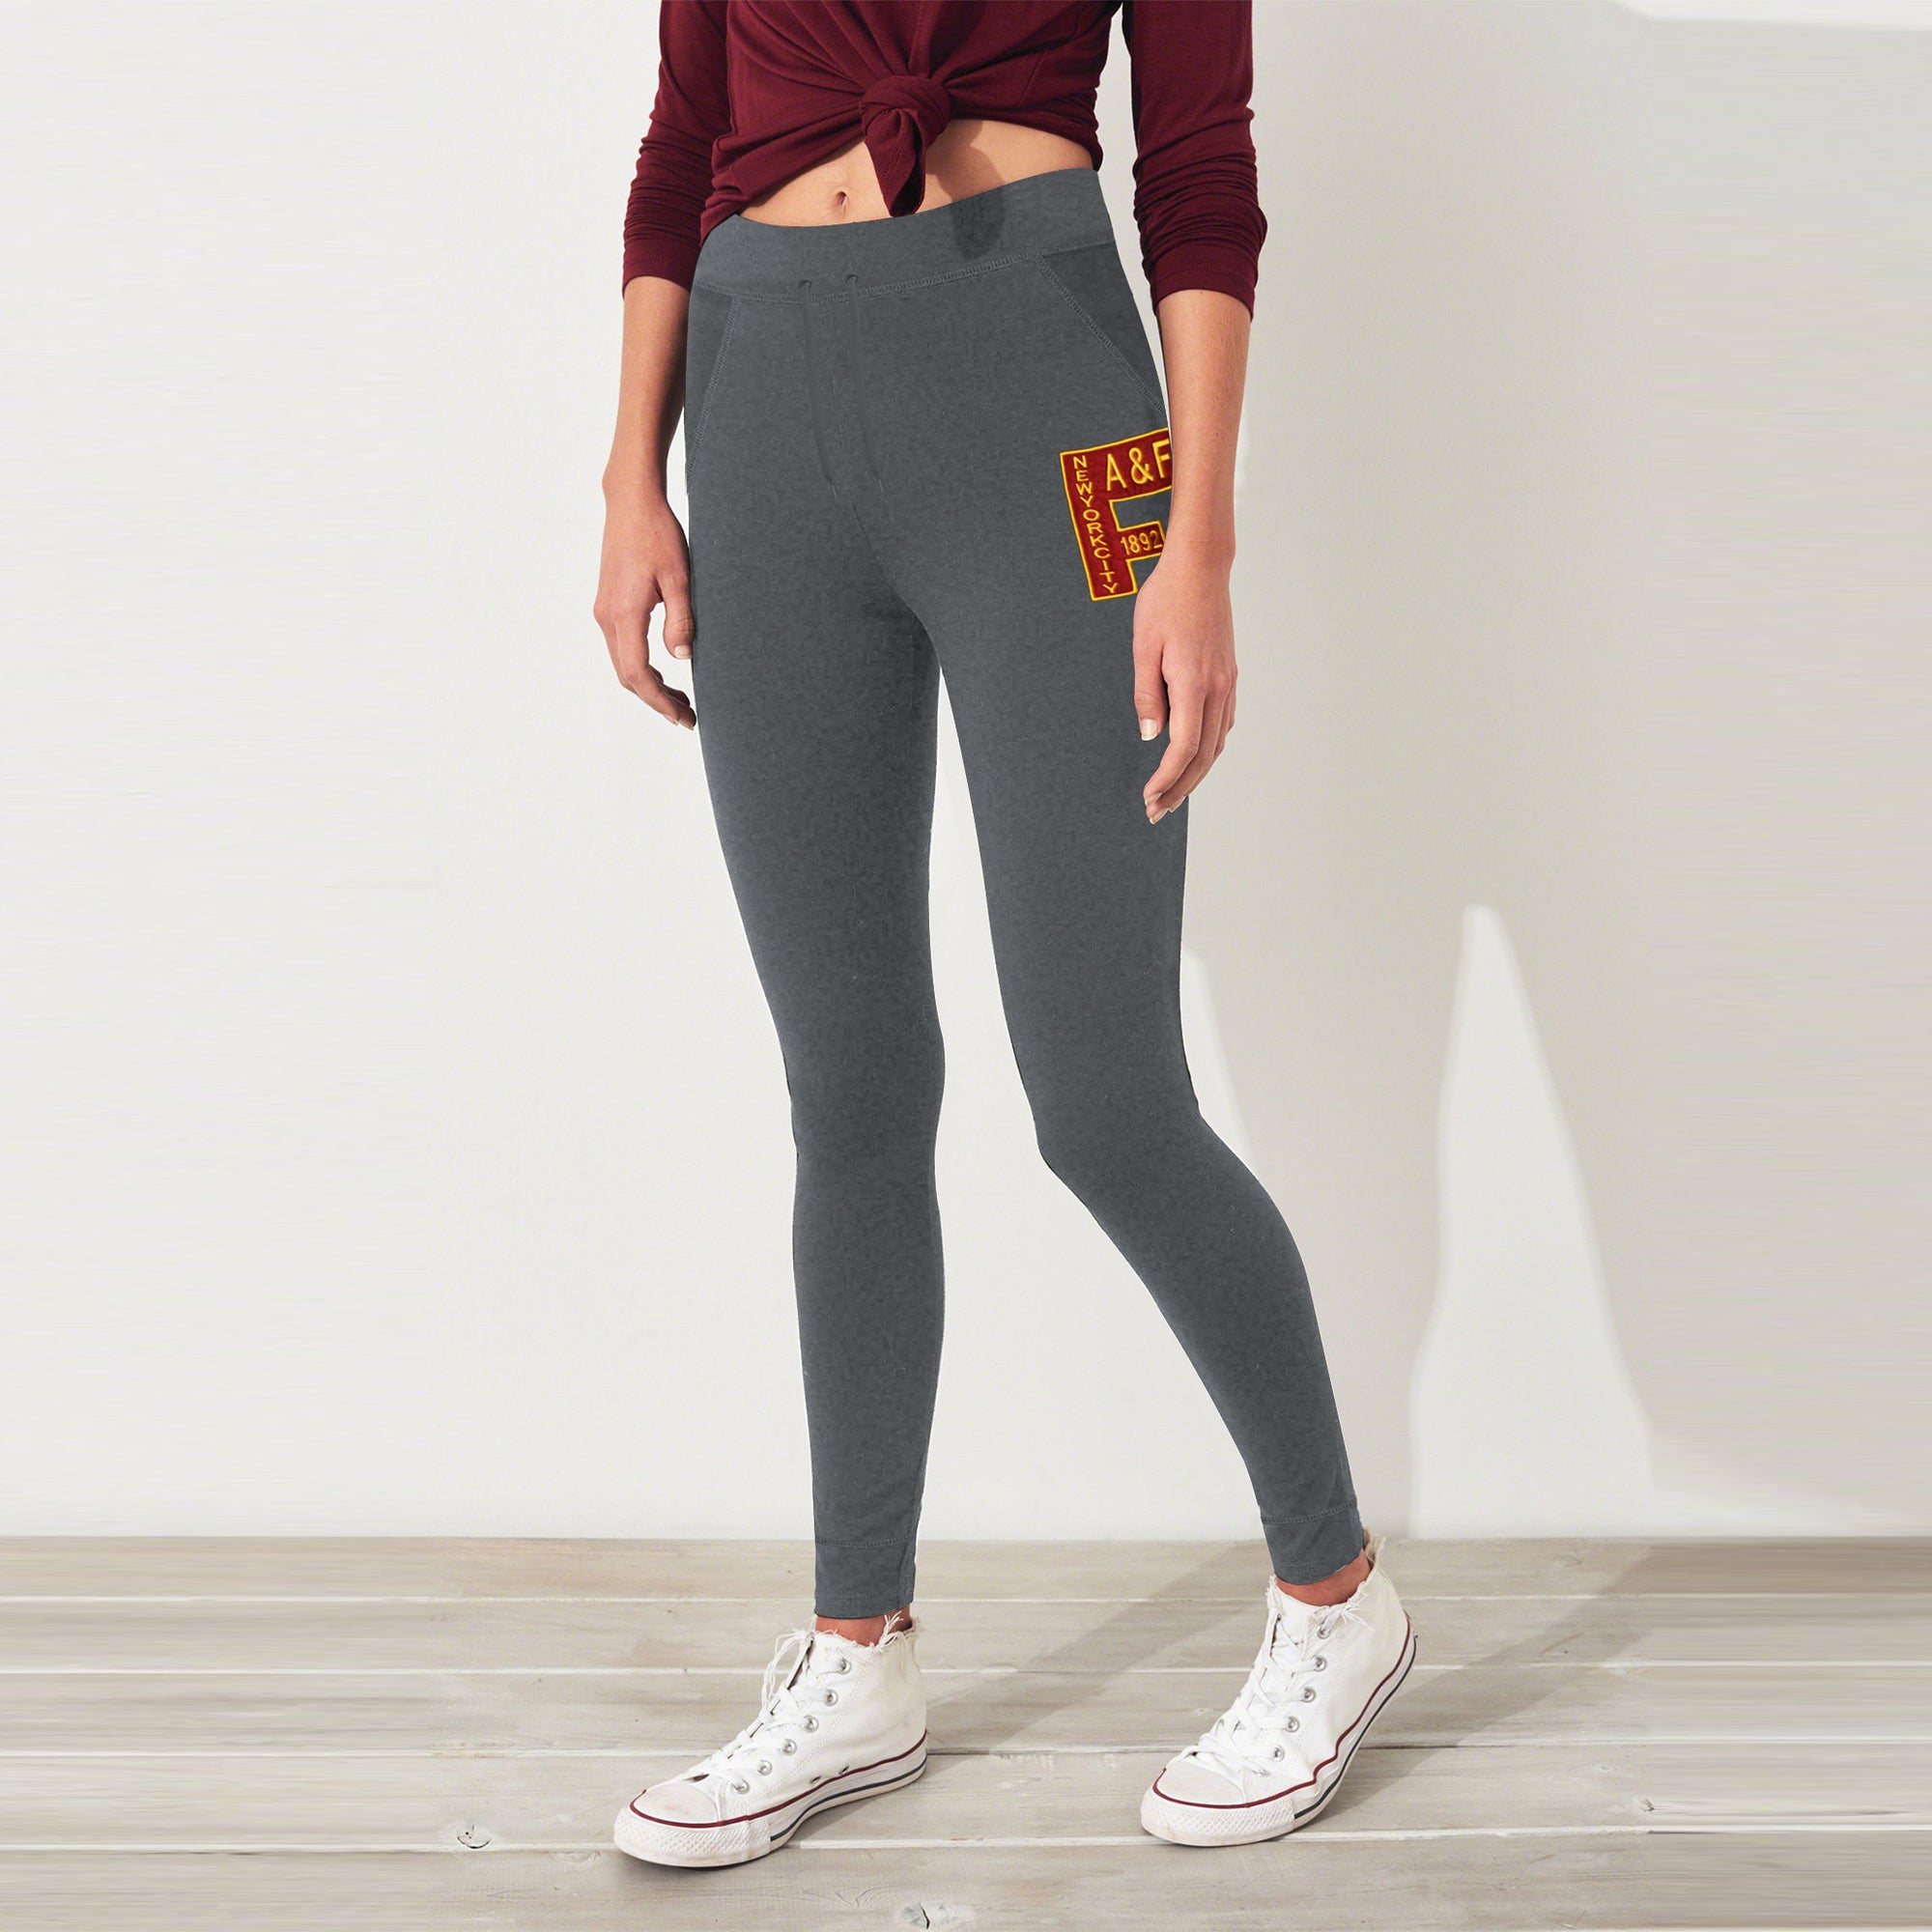 A&F Fleece Slim Fit Jogger Trouser Navy & Maroon Embroidery For Ladies-Charcoal Melange-BE7512